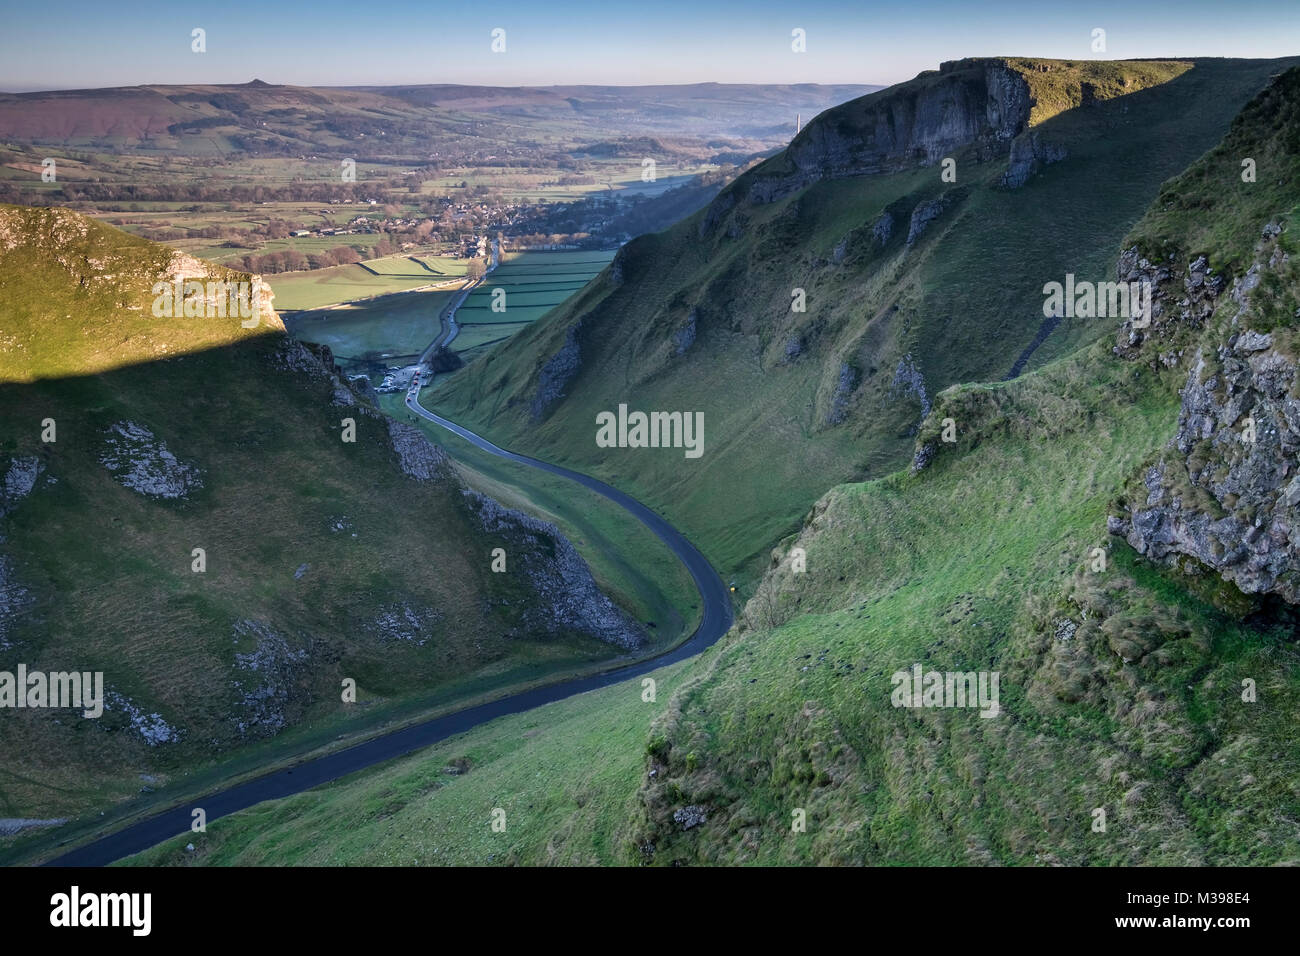 Winnats Pass limestone gorge, near Castleton, Peak District National Park, Derbyshire, England, UK - Stock Image